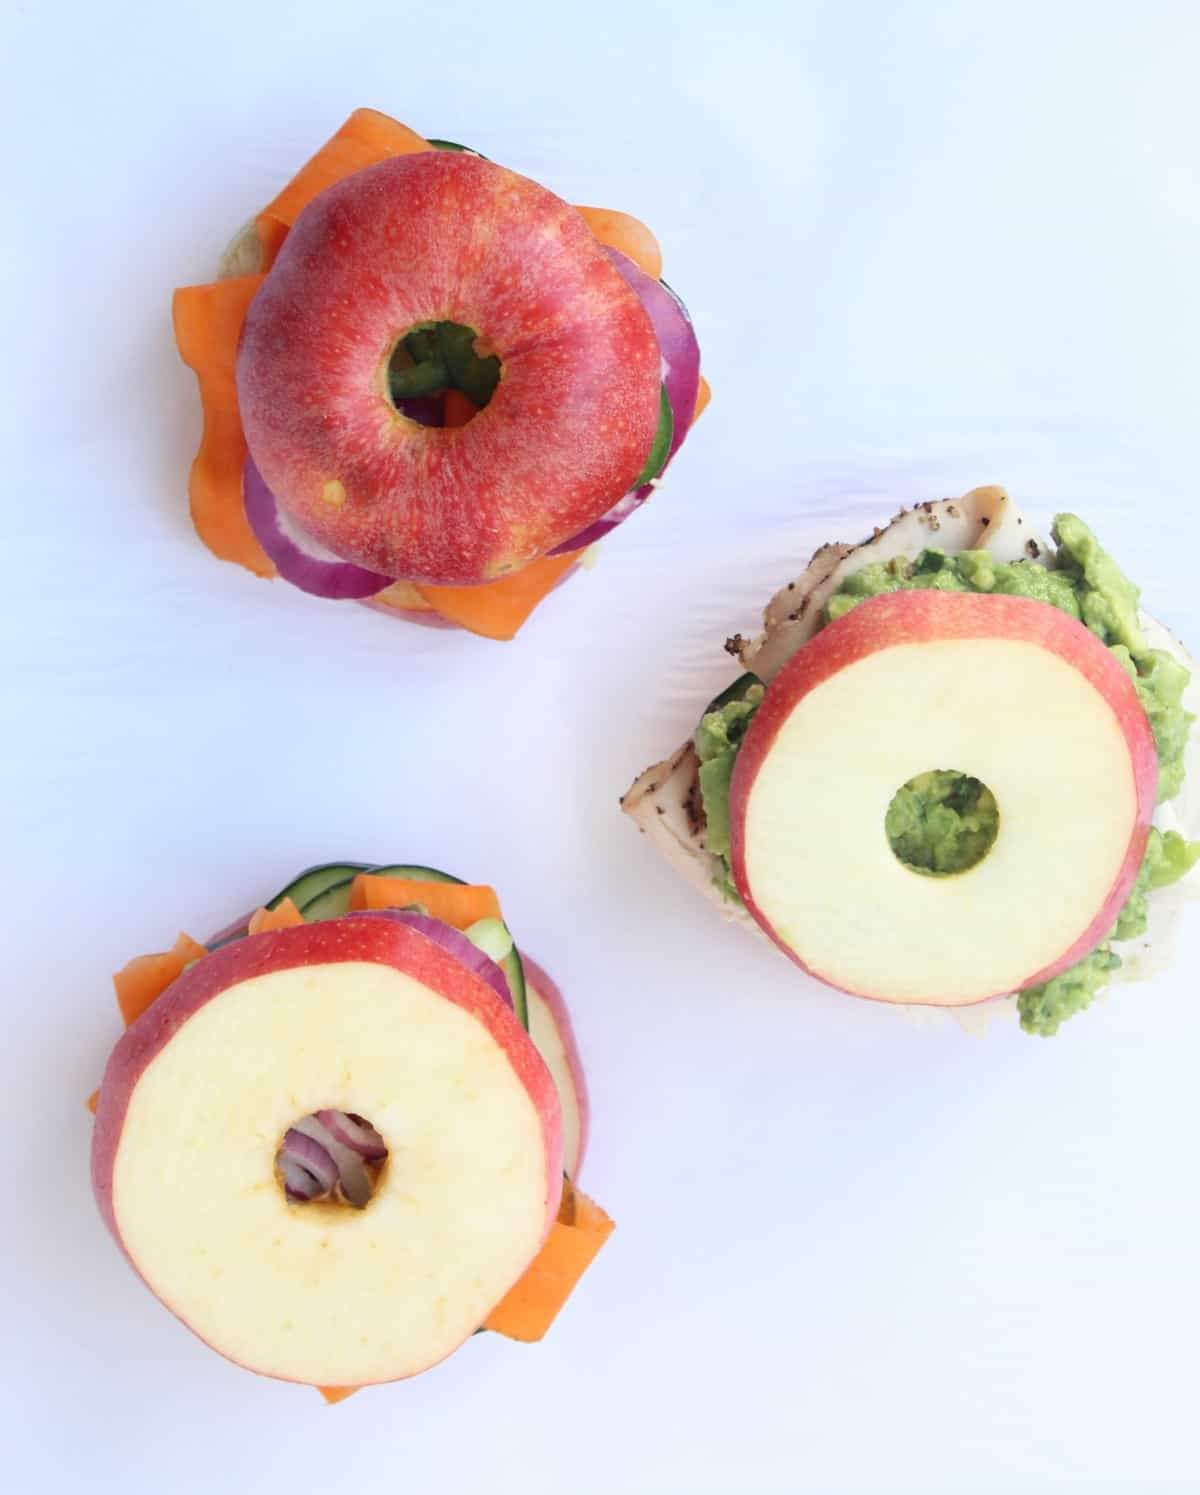 Customizable Apple Bun Sandwiches